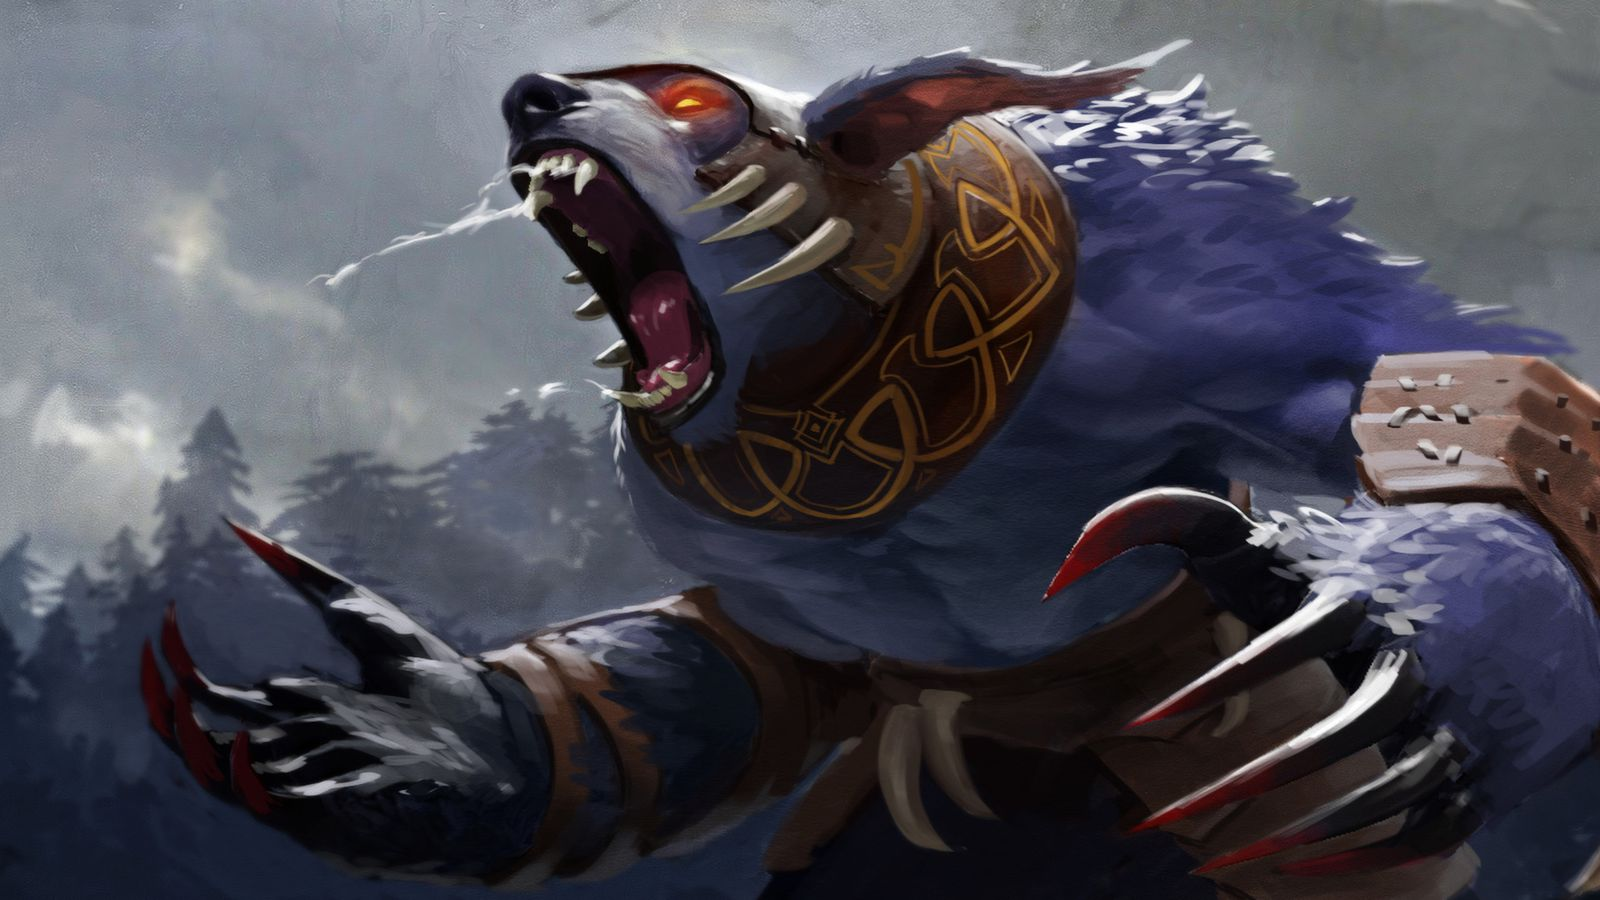 Herald Dota 2 Badge: Dota 2 Will Require A Phone Number For Ranked Matches